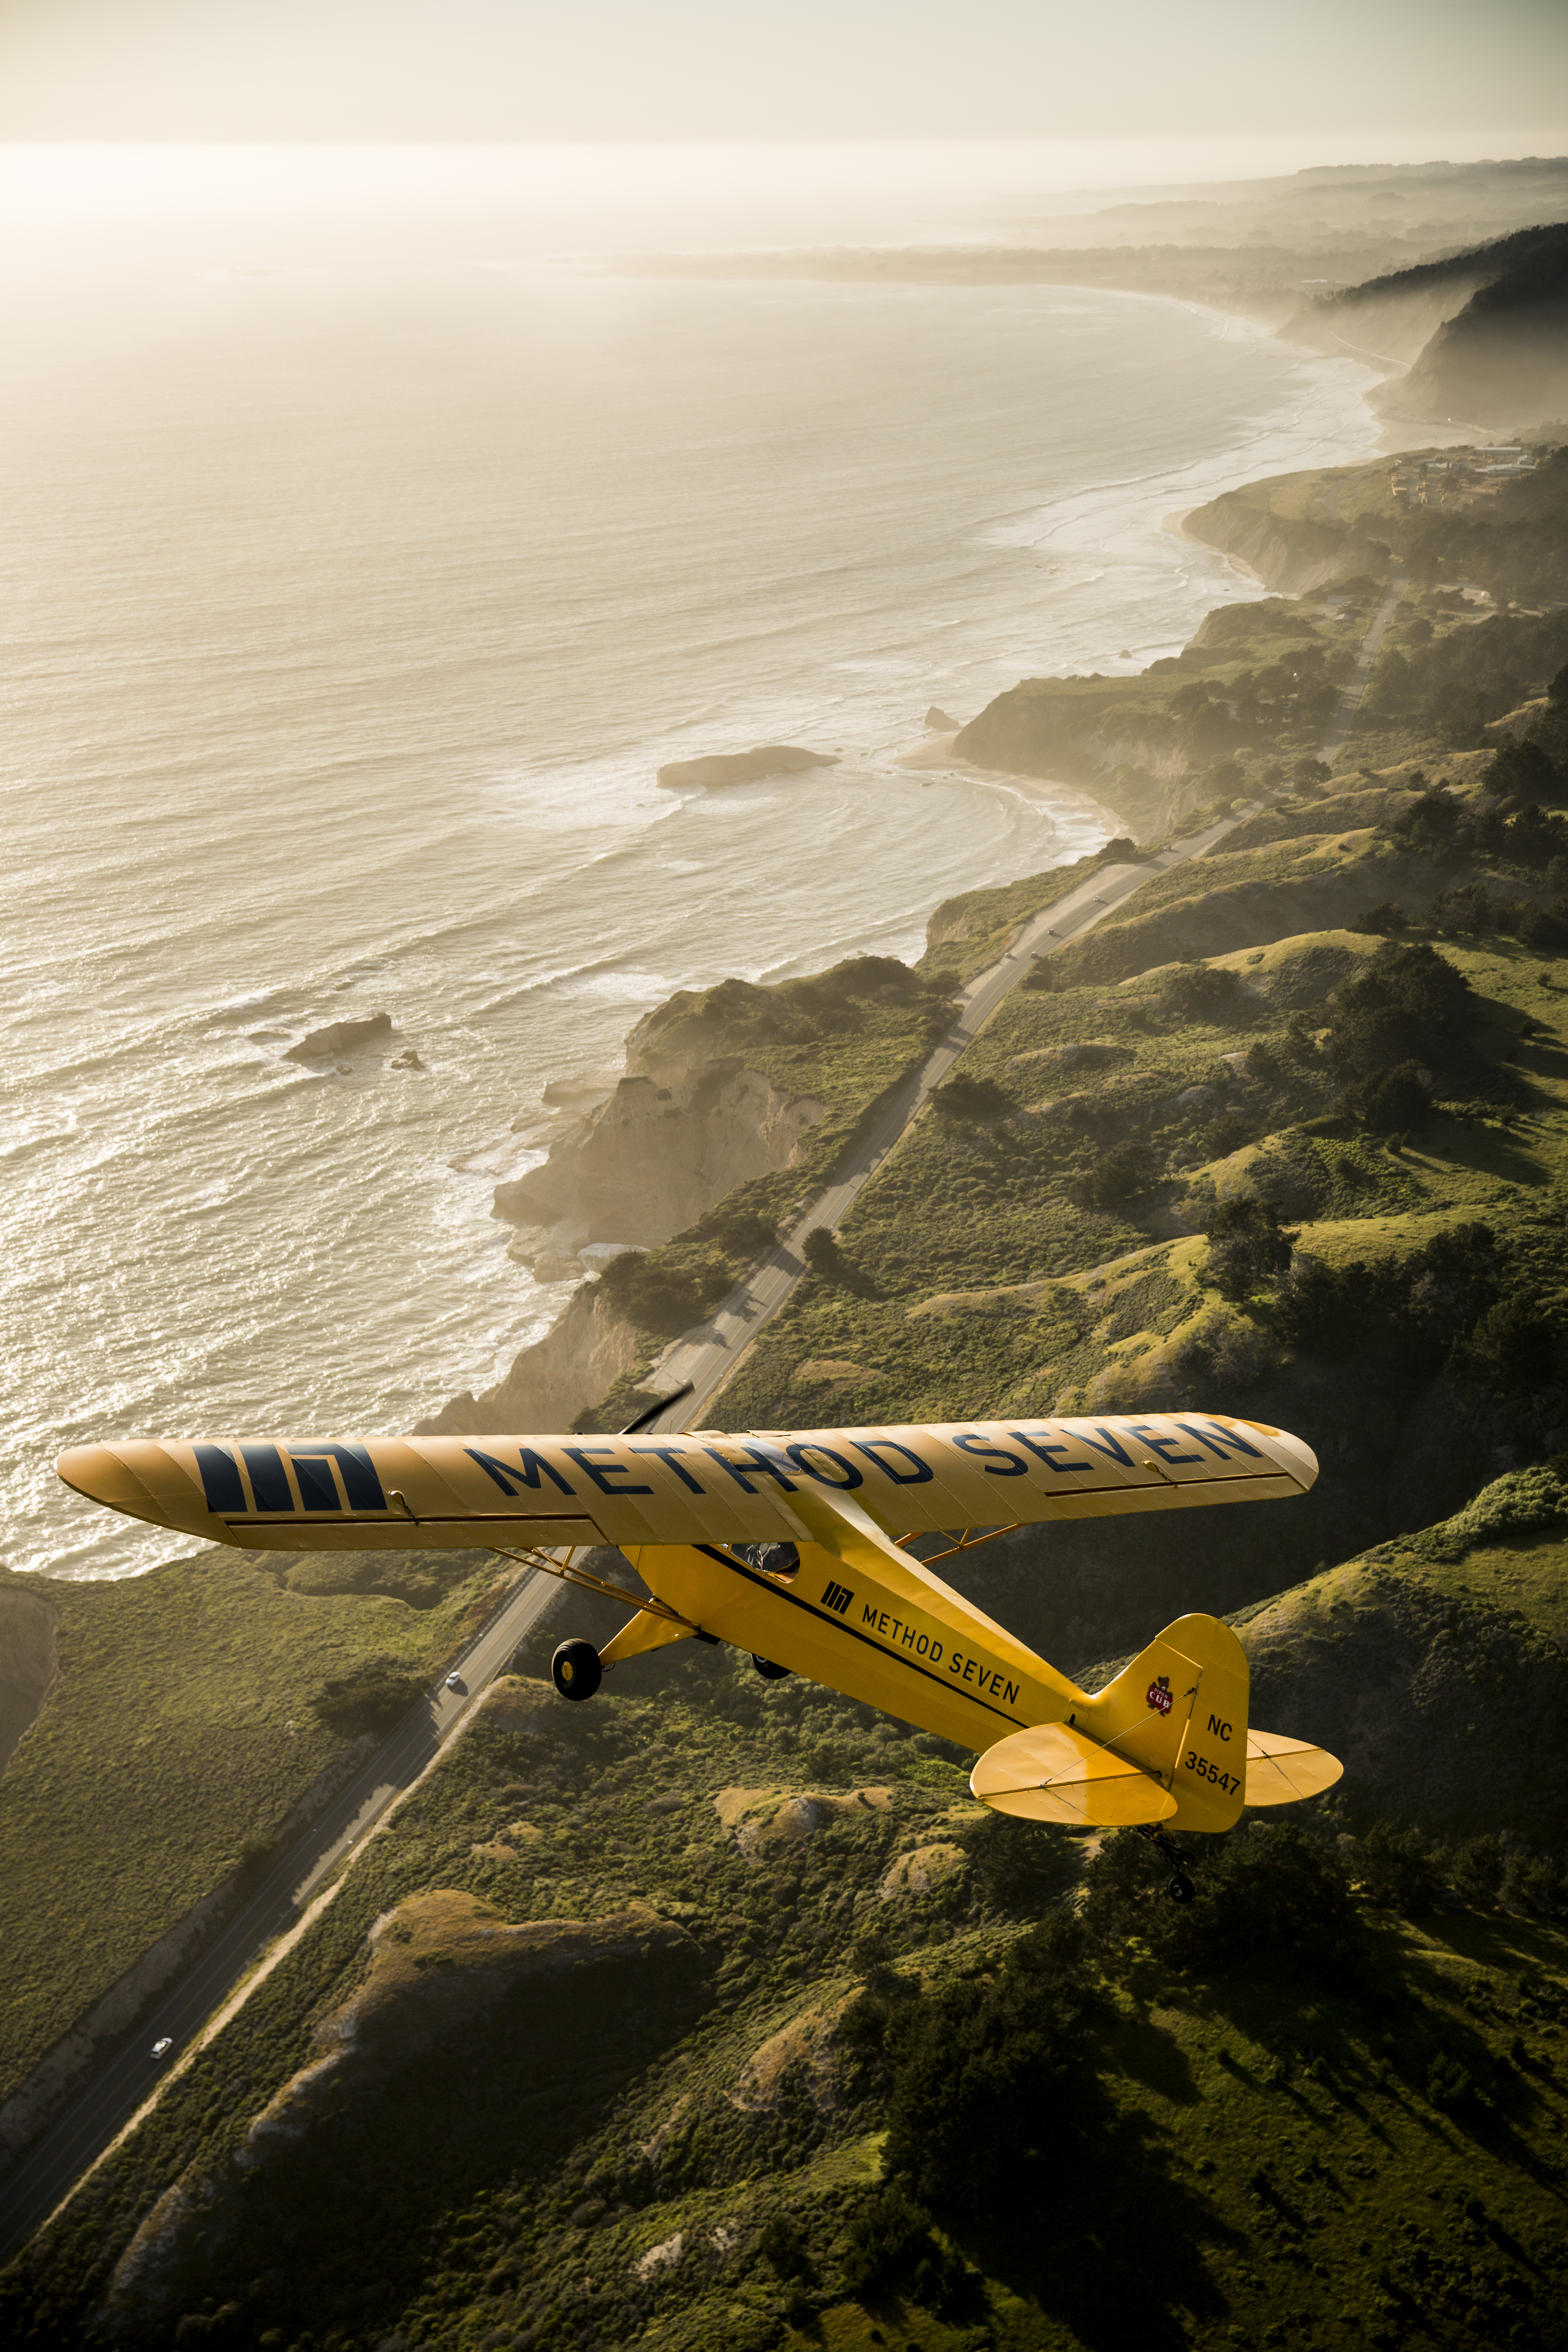 Eric Tucker flying his J3 Piper Cub over Highway 1 in California